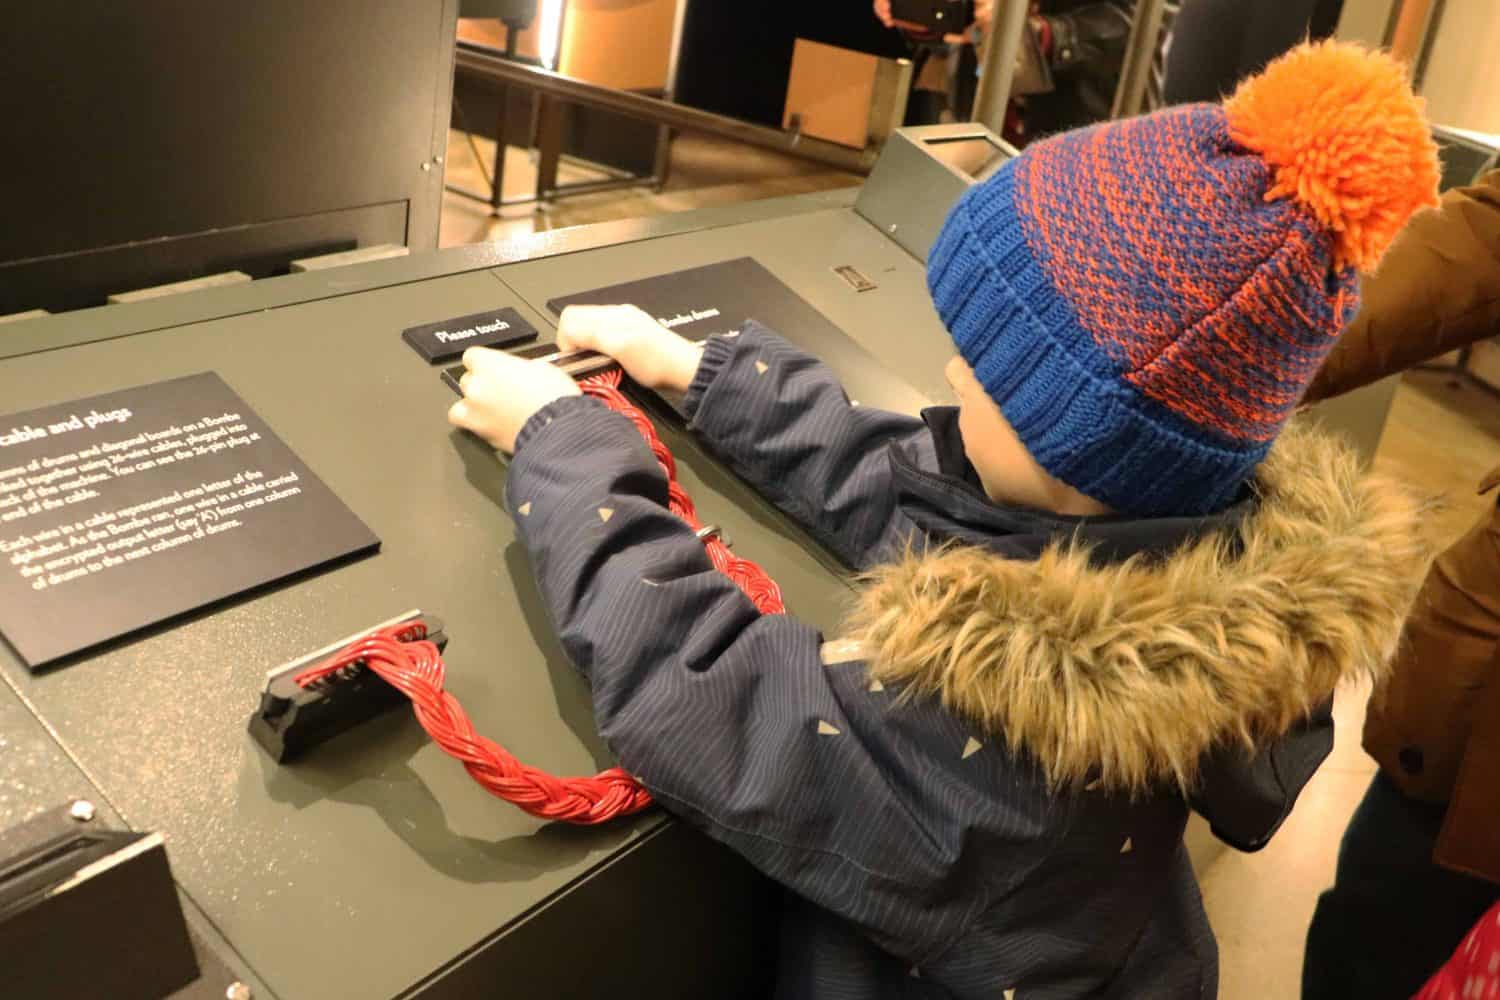 Interactive exhibits at Bletchley Park